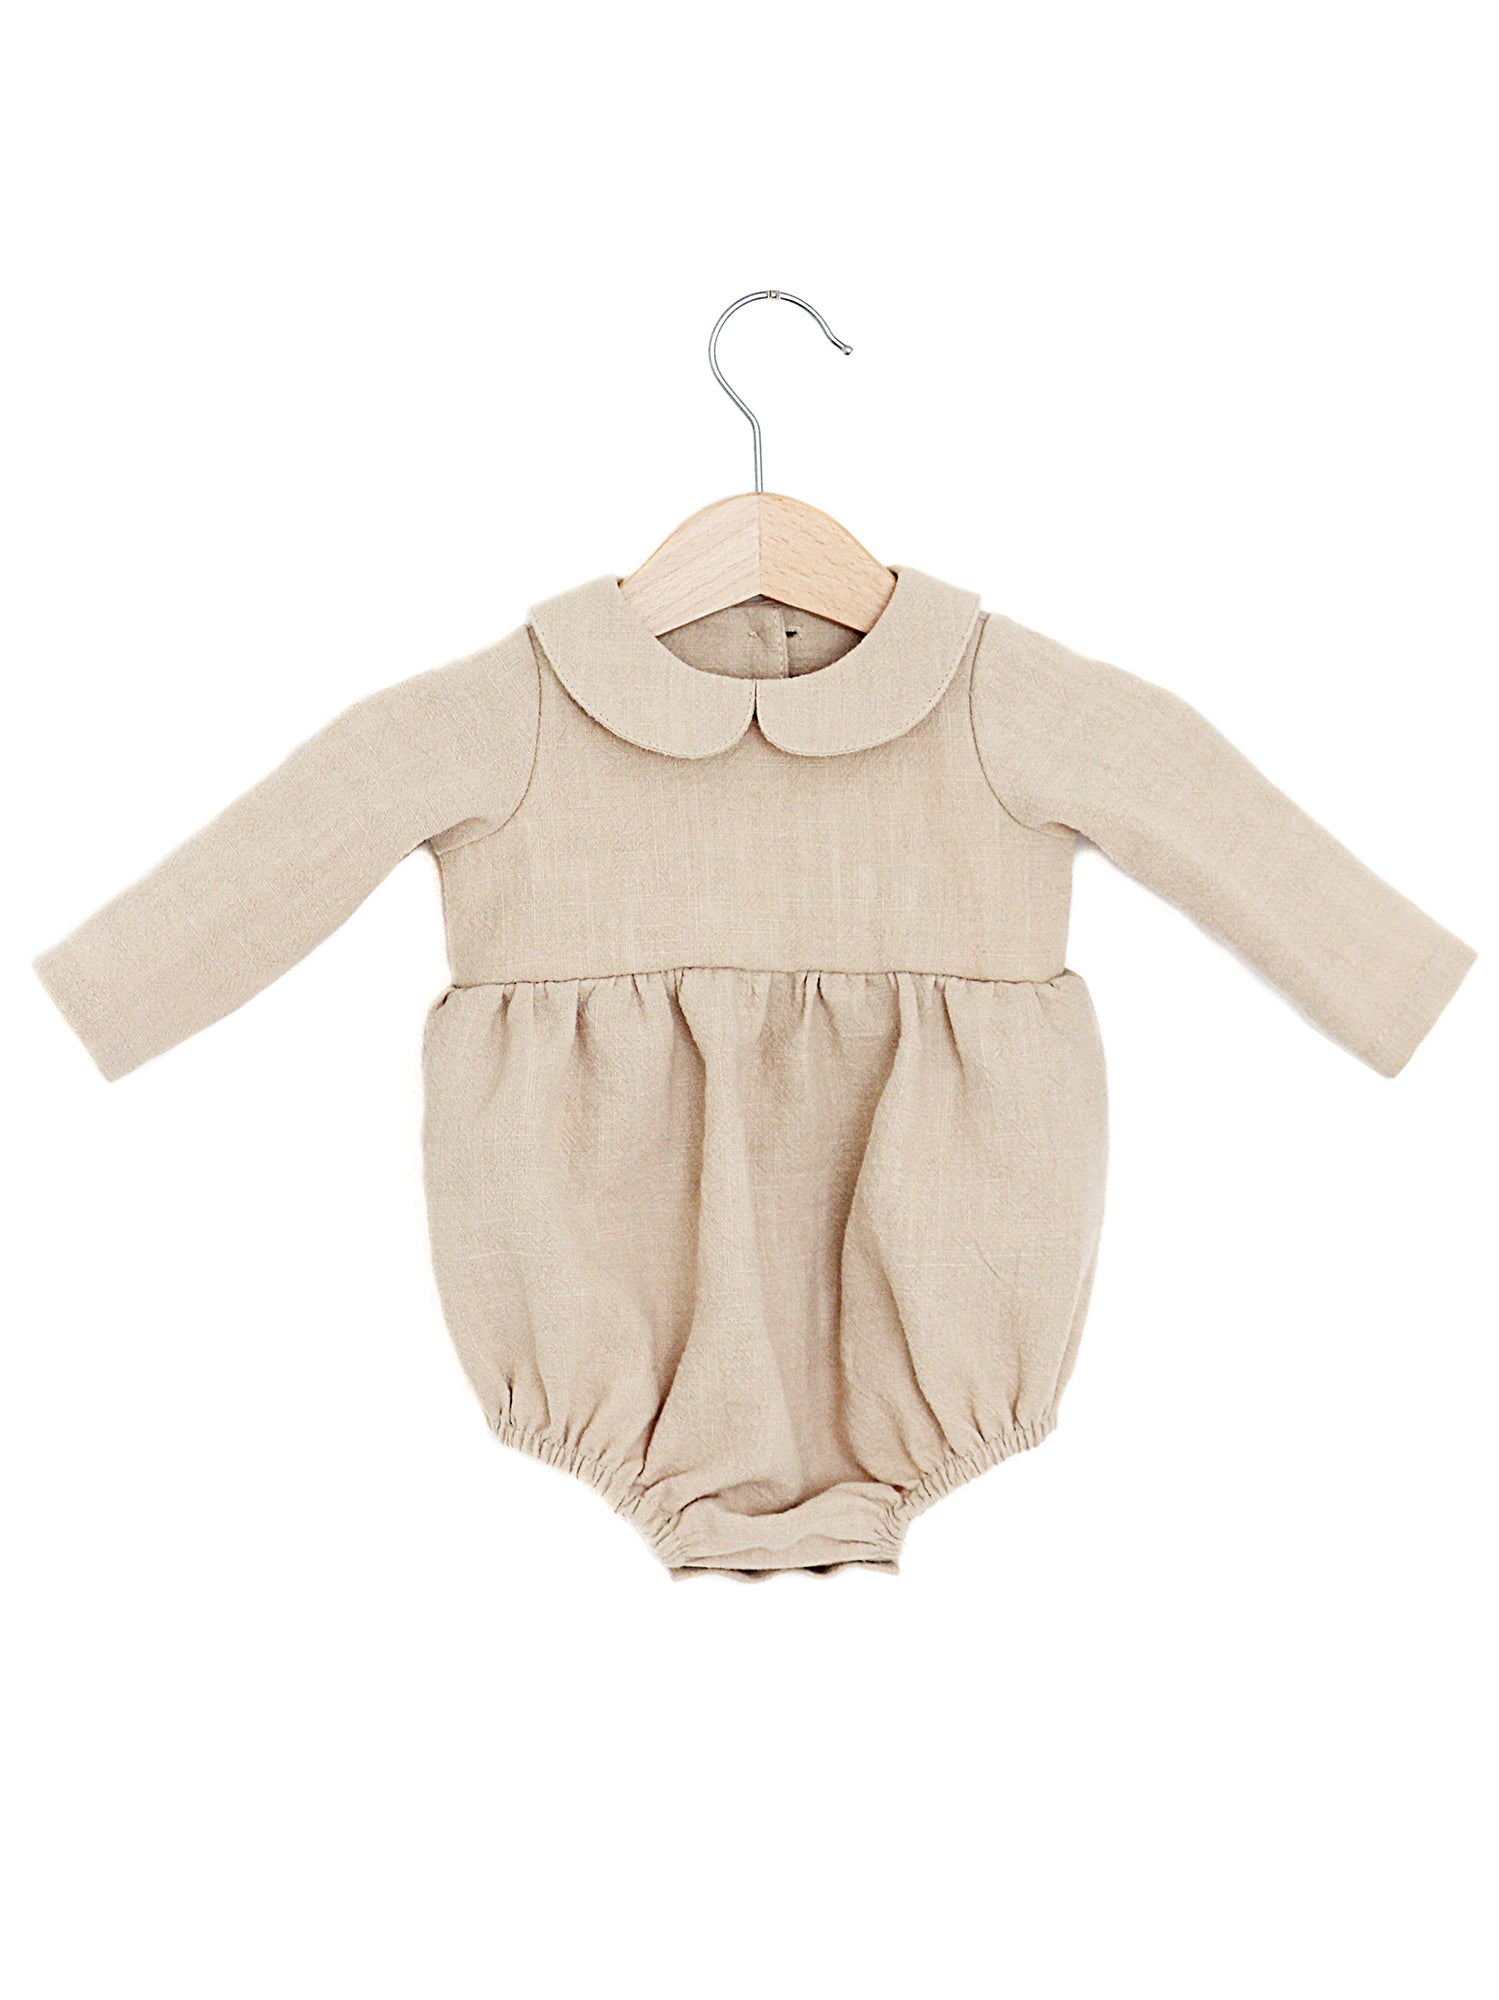 6bb6492200b3 The Matilda  Linen Peter Pan Collar Romper